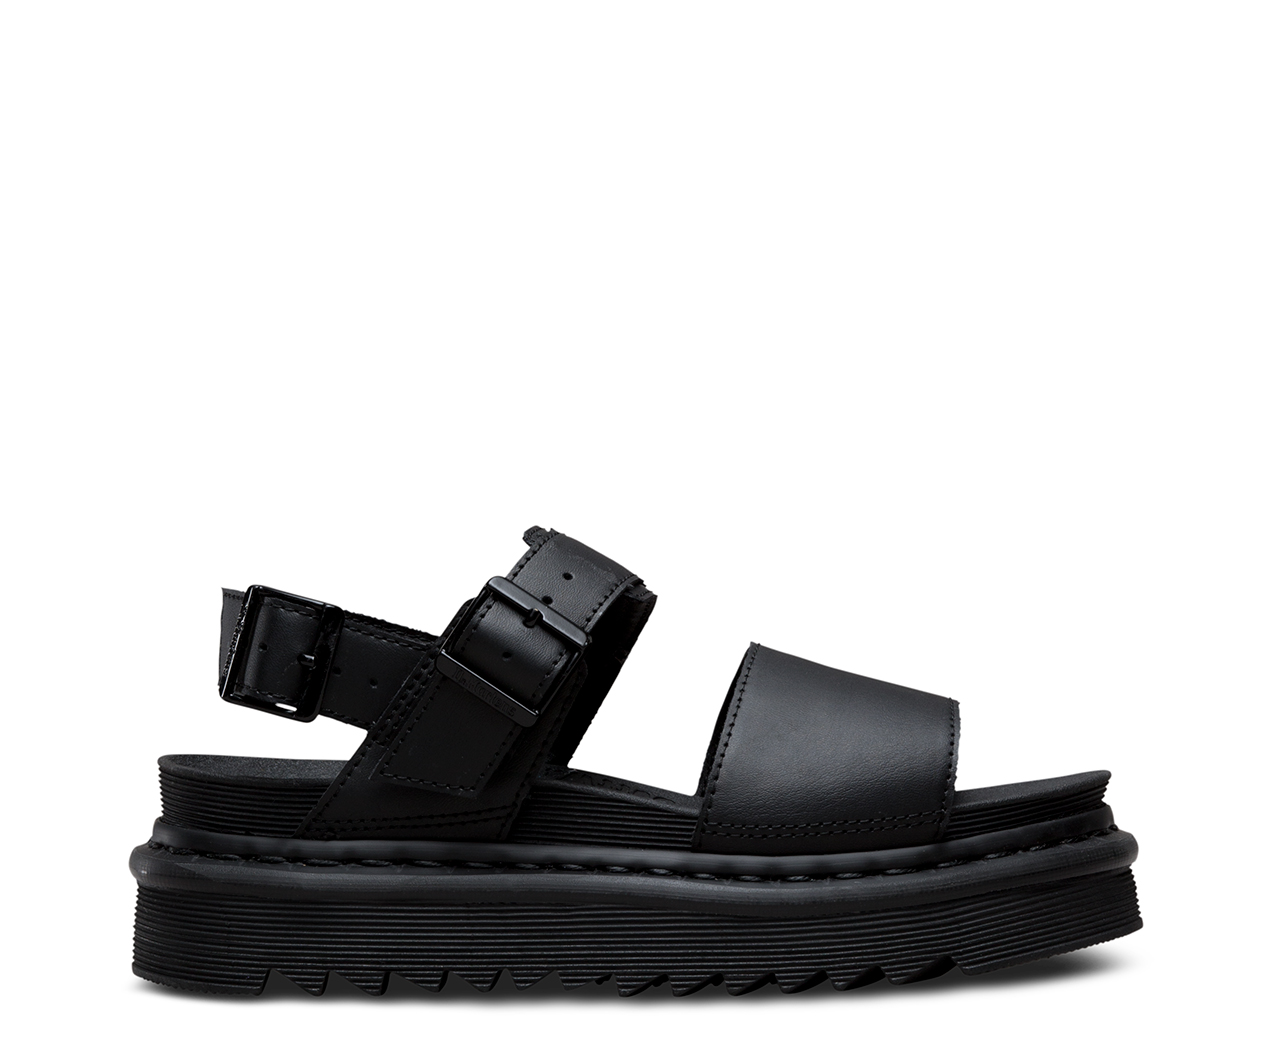 Voss Black Leather Flat Sandals - Black hydro leather Dr. Martens kss0esbV